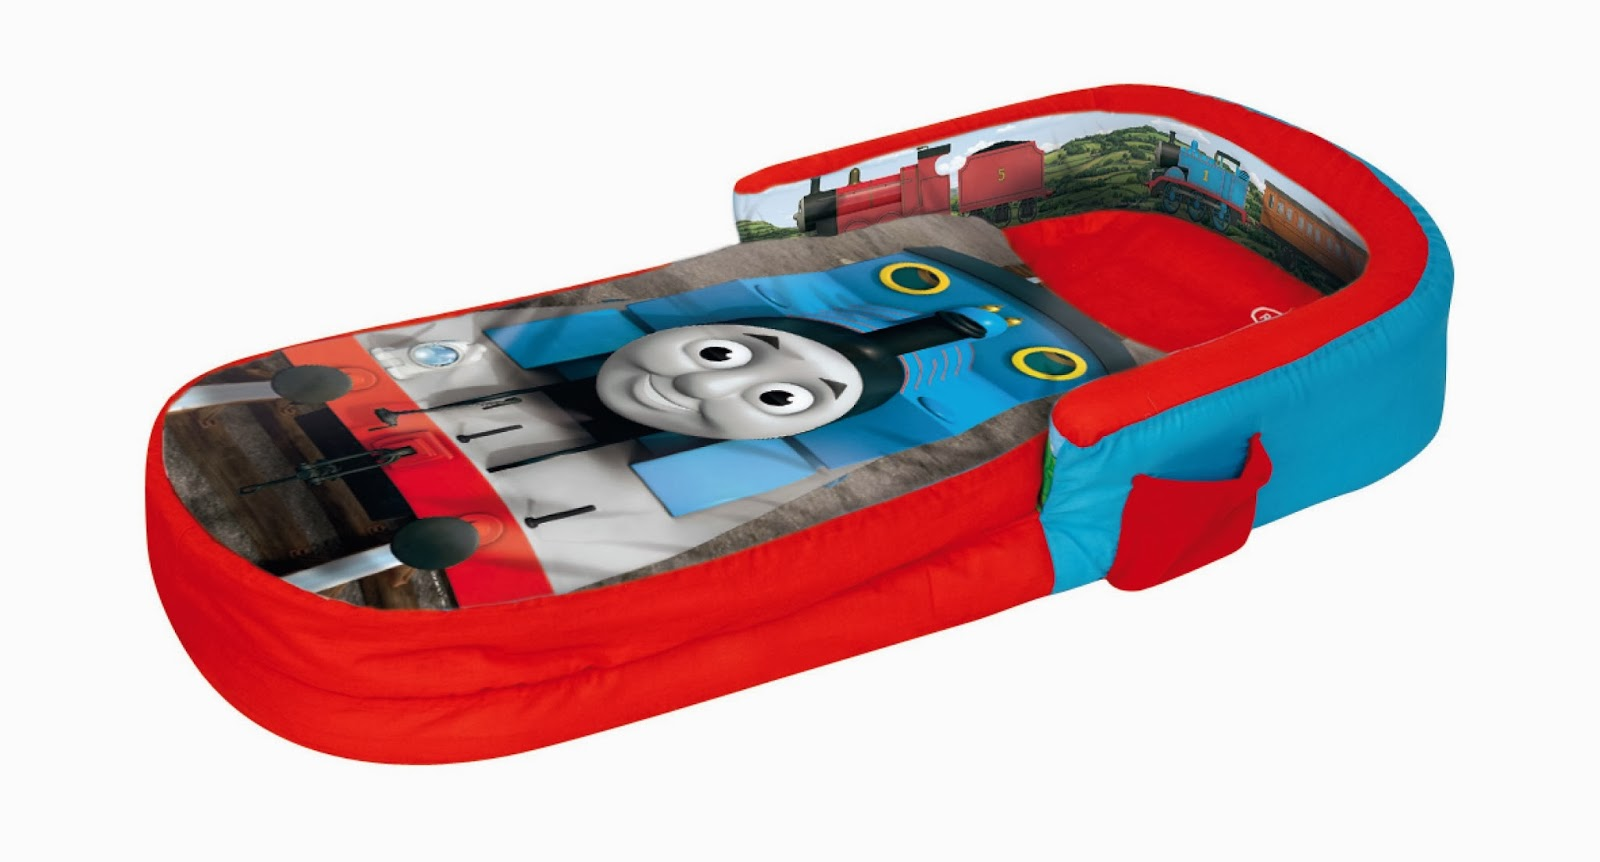 Thomas Amp Friends My First Ready Bed Review Annmarie John